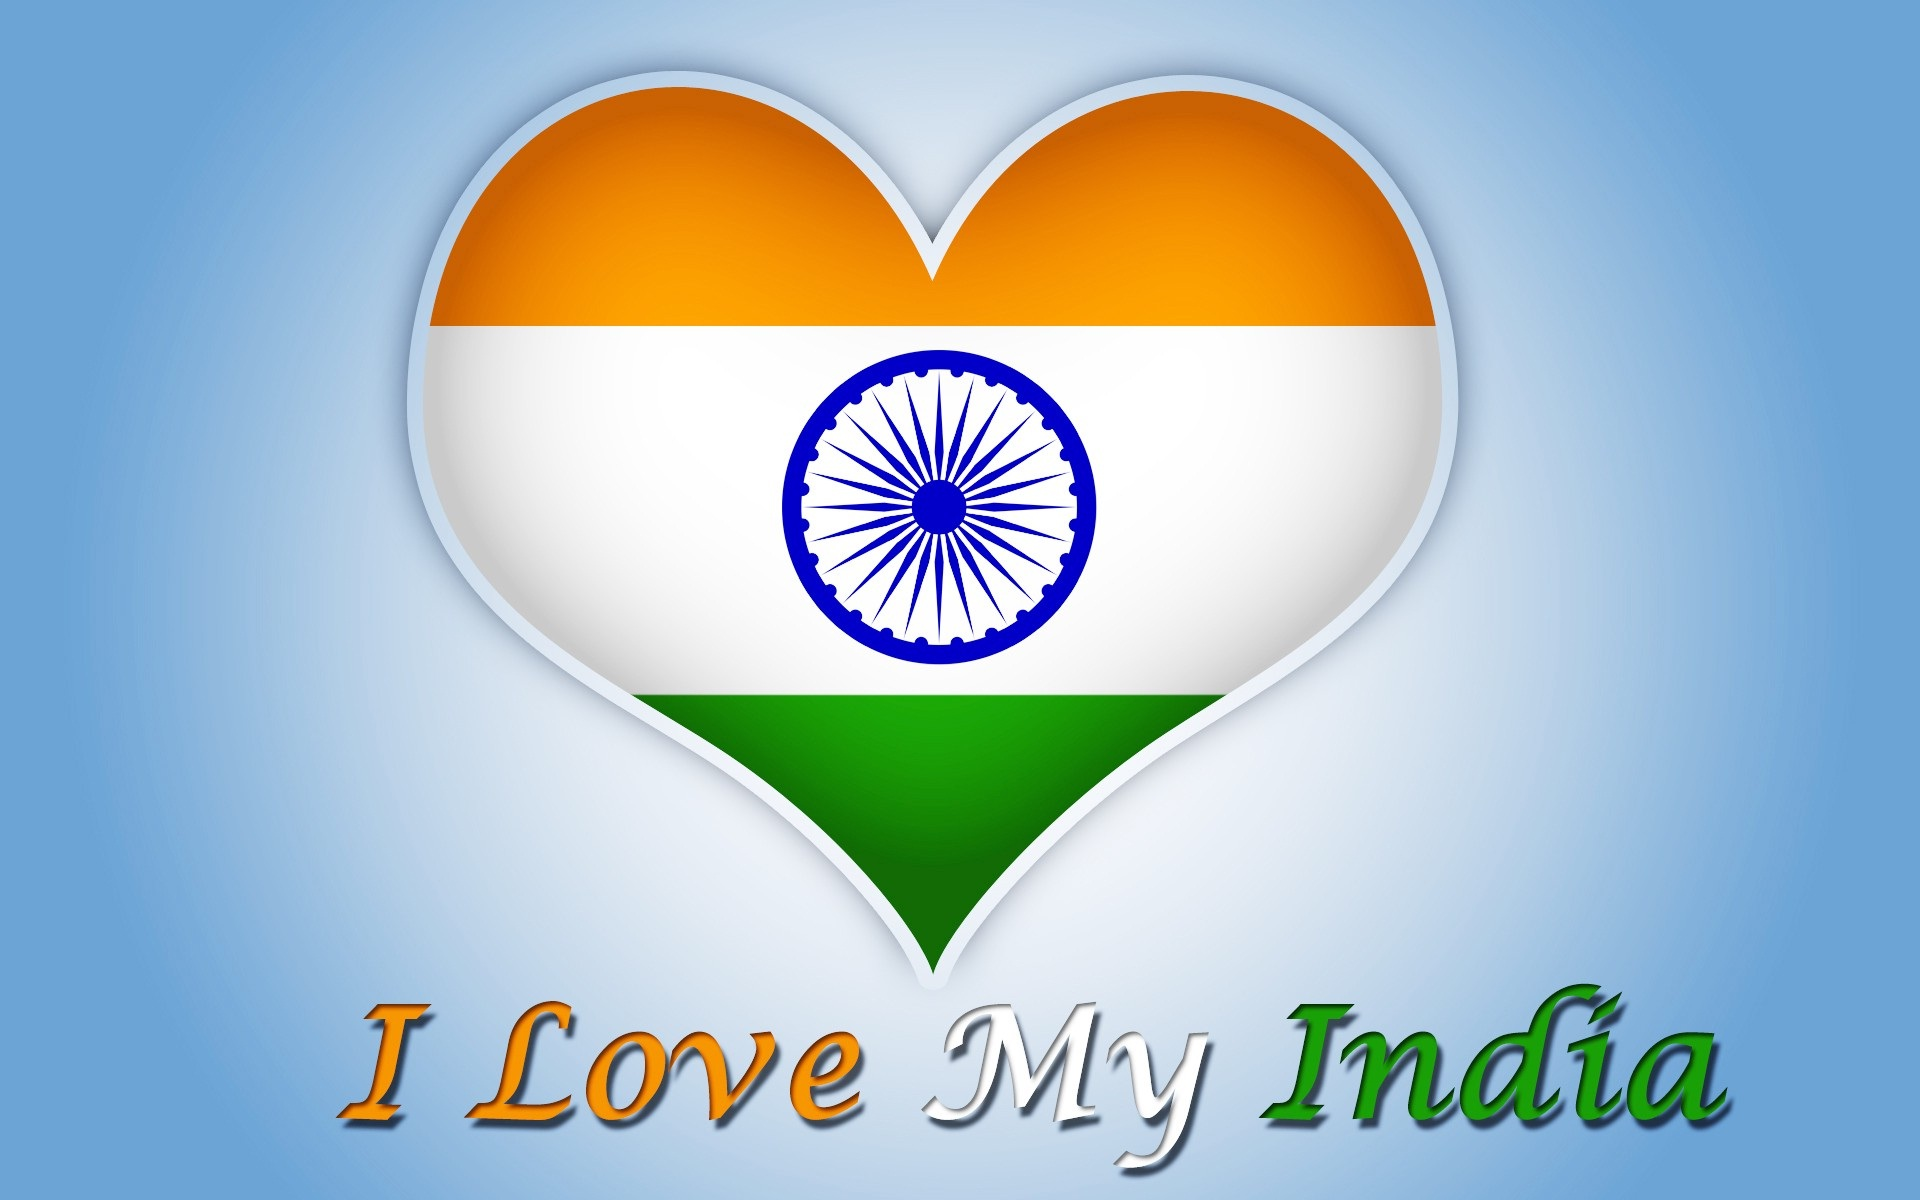 i love my india images